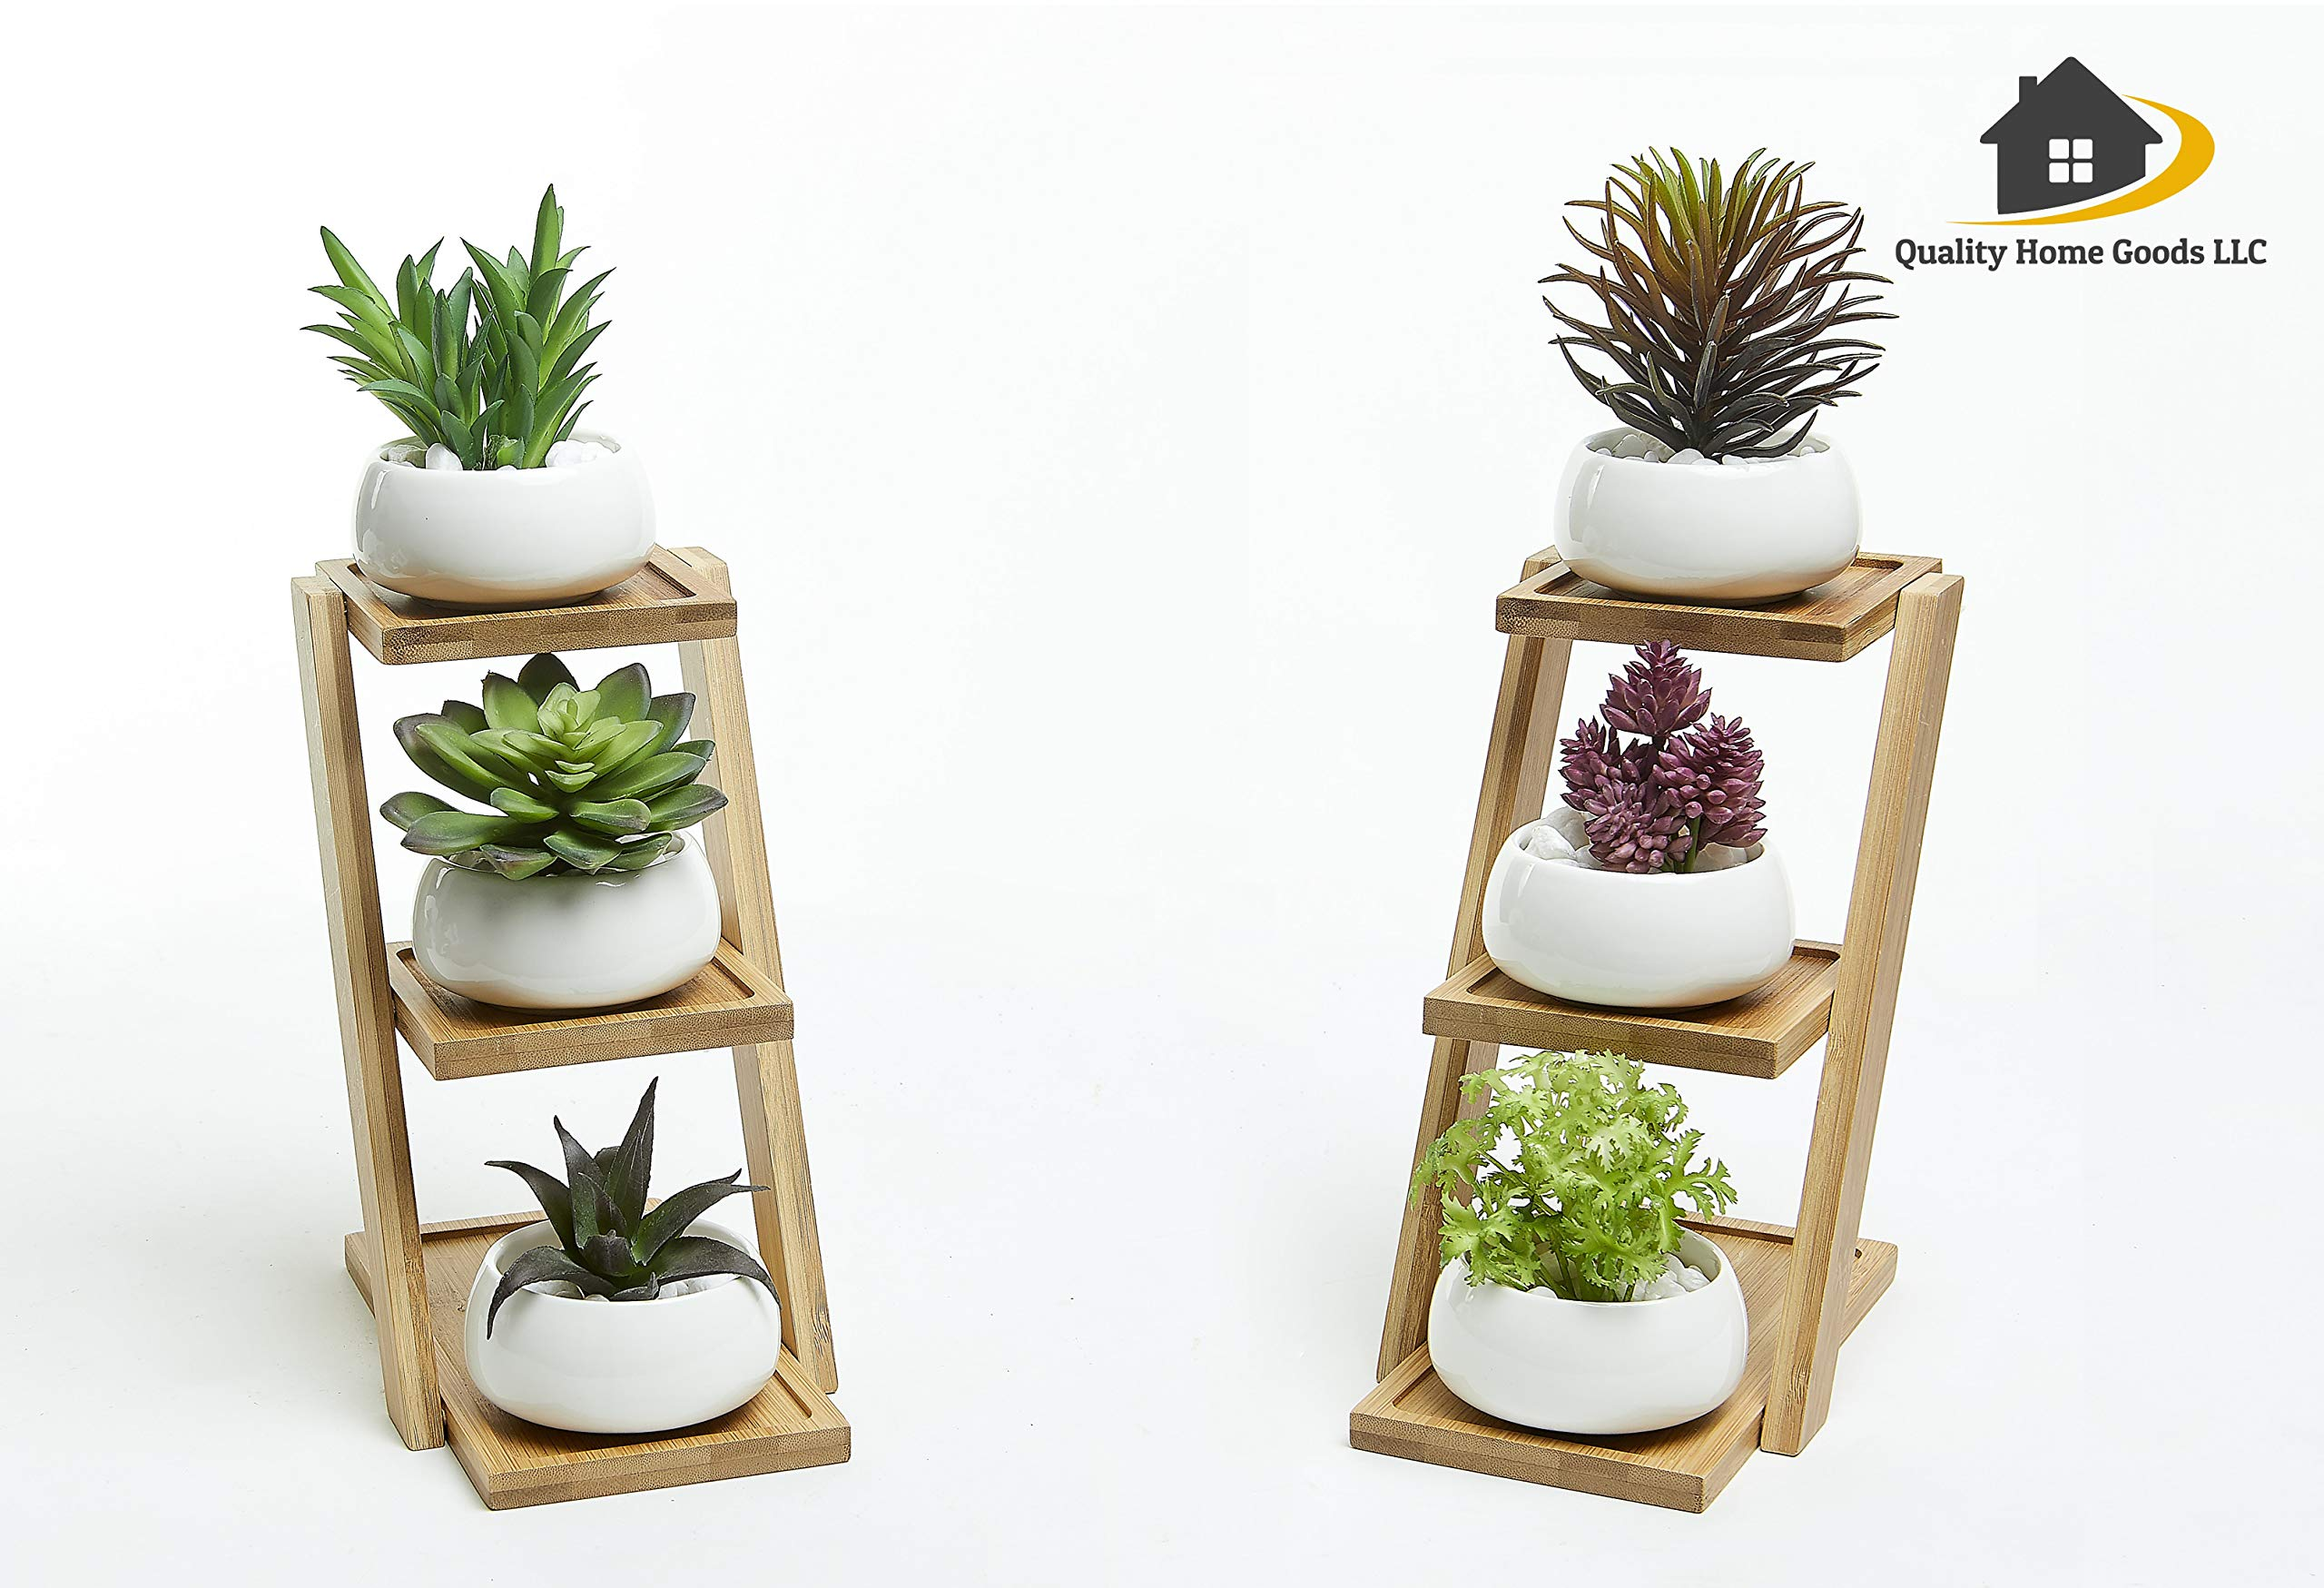 Artificial-Faux-Assorted-Plant-Succulents-Pack-of-6-Small-Mini-Decorative-Fake-Flower-Home-Decor-Pick-for-Indoor-or-Outdoor-Garden-Terrarium-Aquarium-Large-Pot-or-Wall-Planter-Hanger-Spring